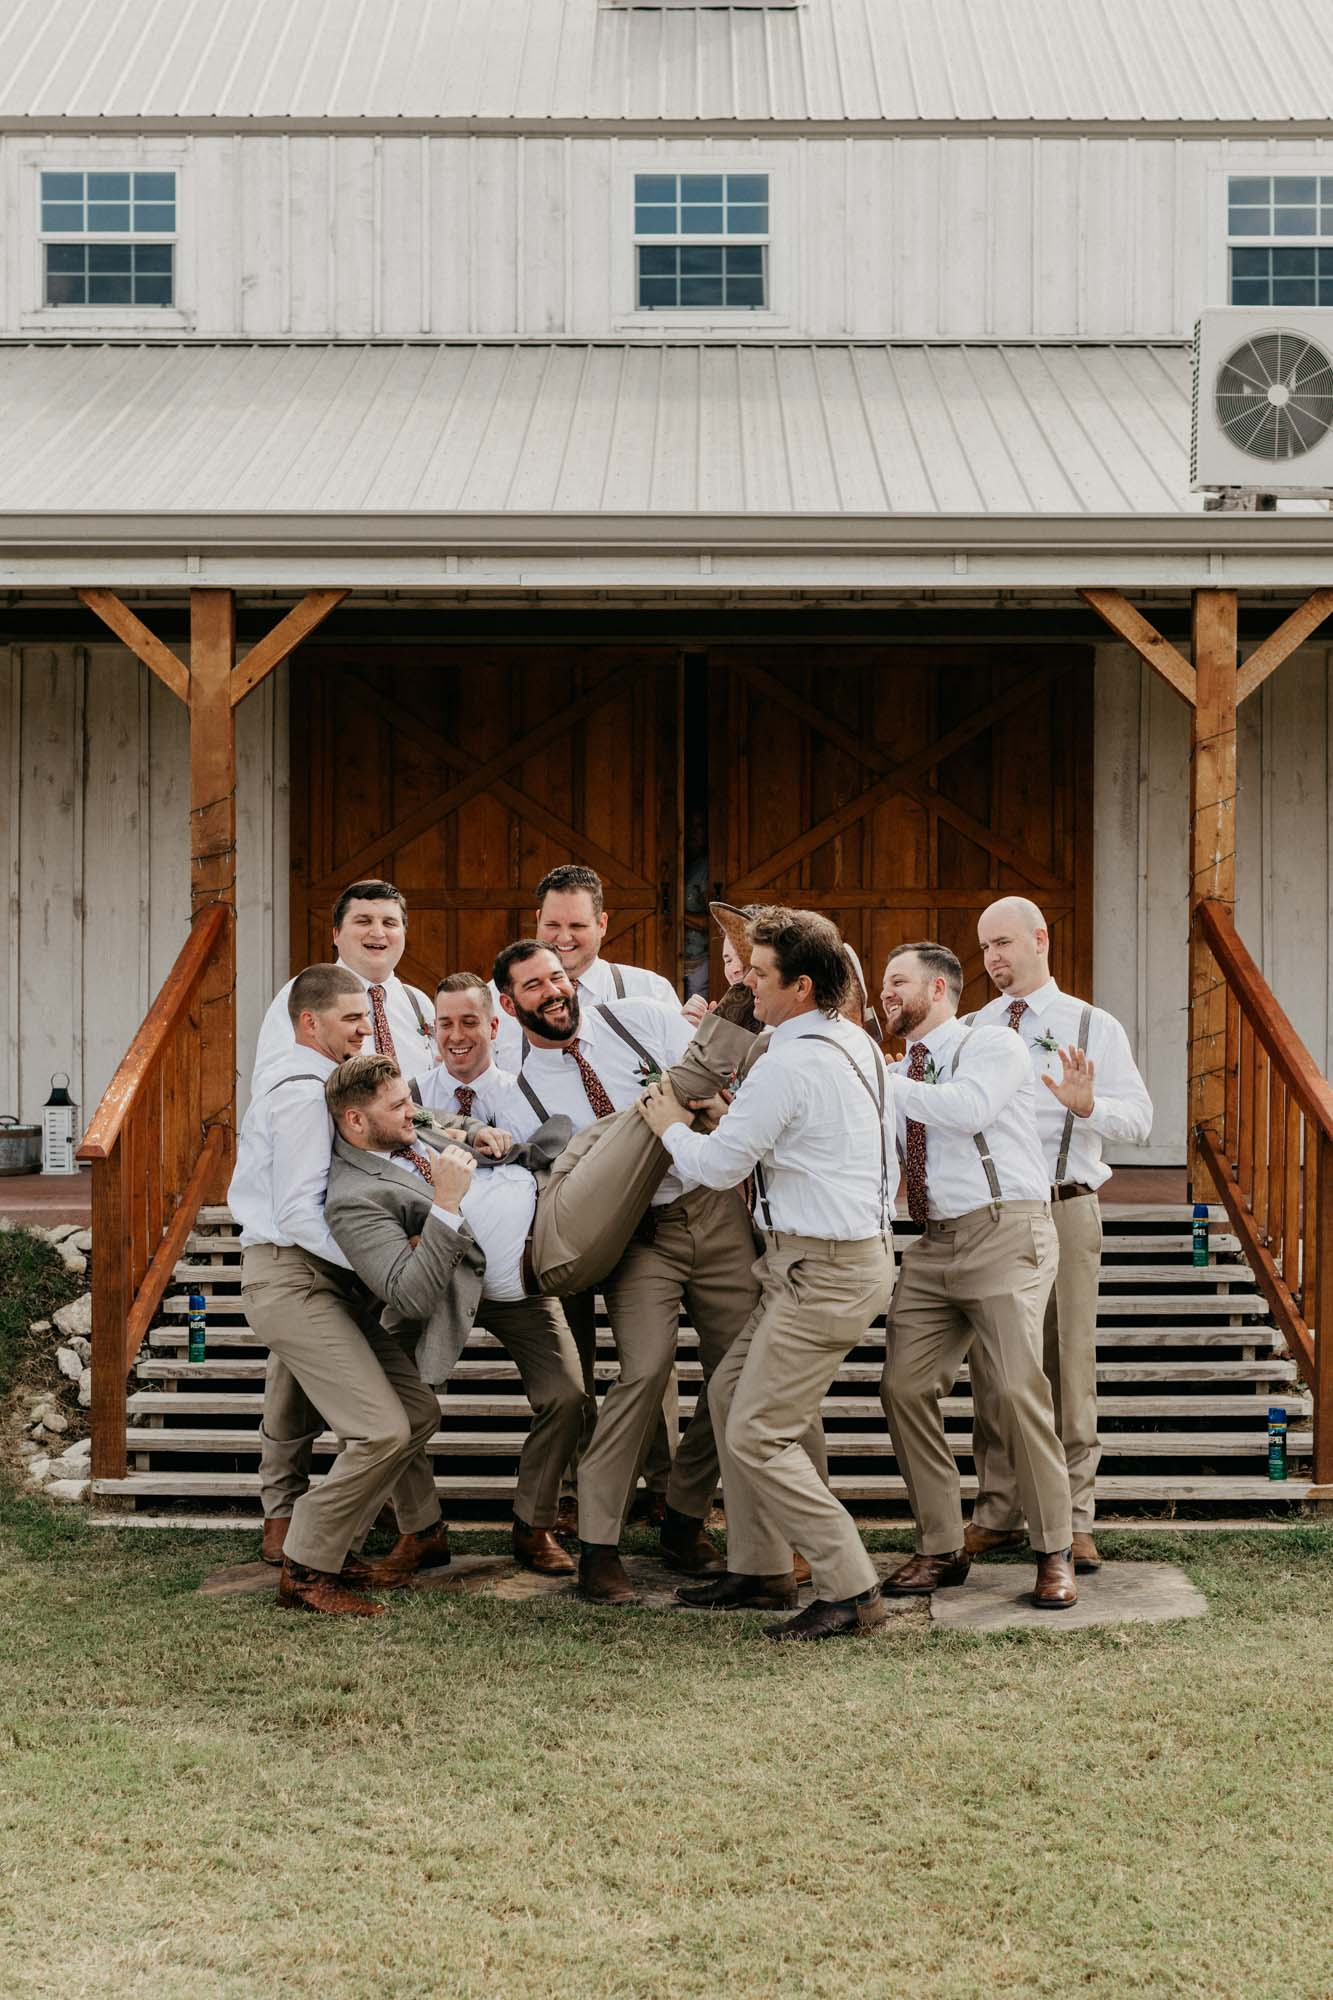 Groom being thrown in air by groomsmen at a fun wedding